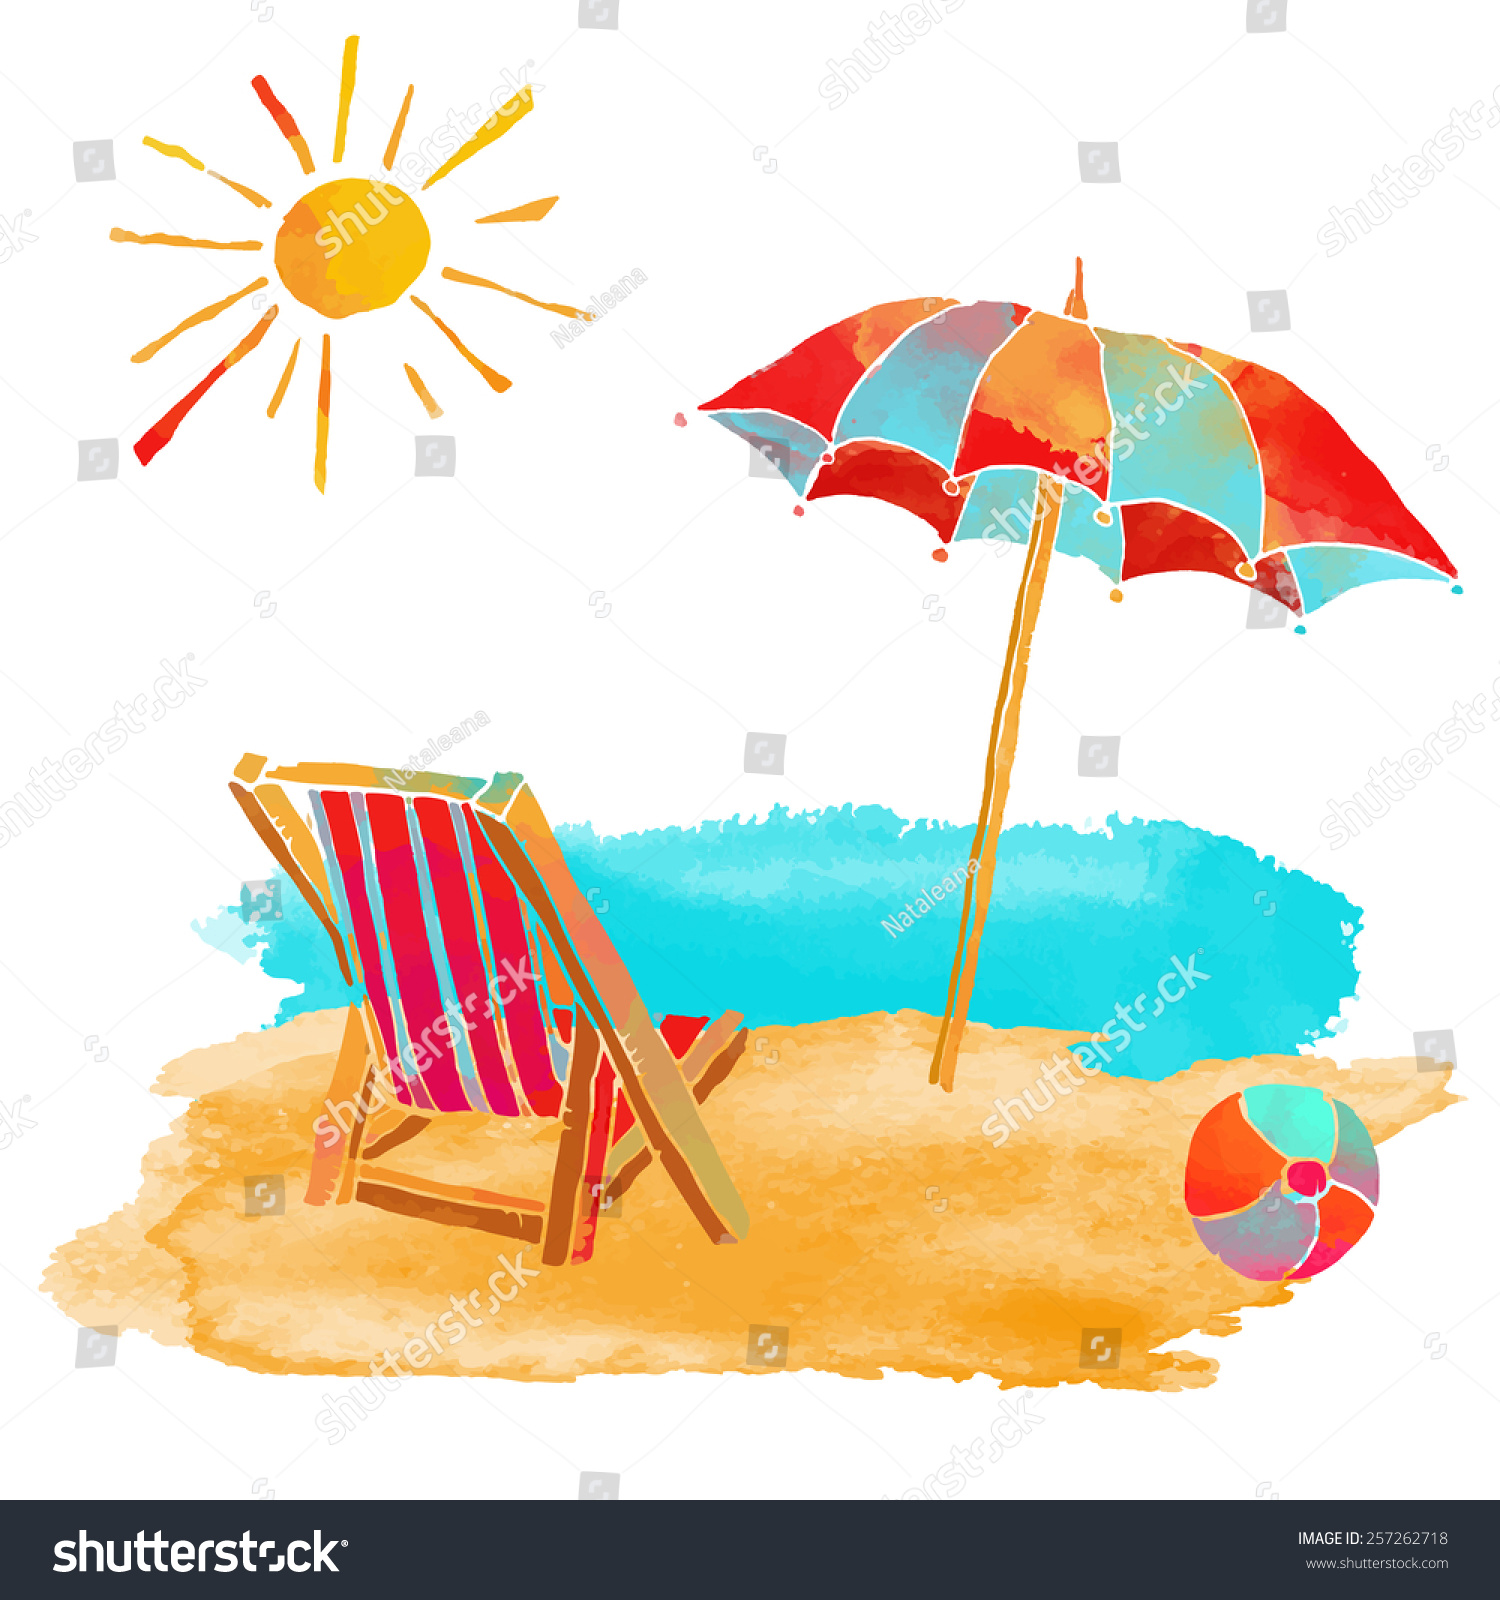 Beach chair and umbrella set - Watercolor Summer Beach Set Sea Sun Sun Umbrella Ball Deck Chair